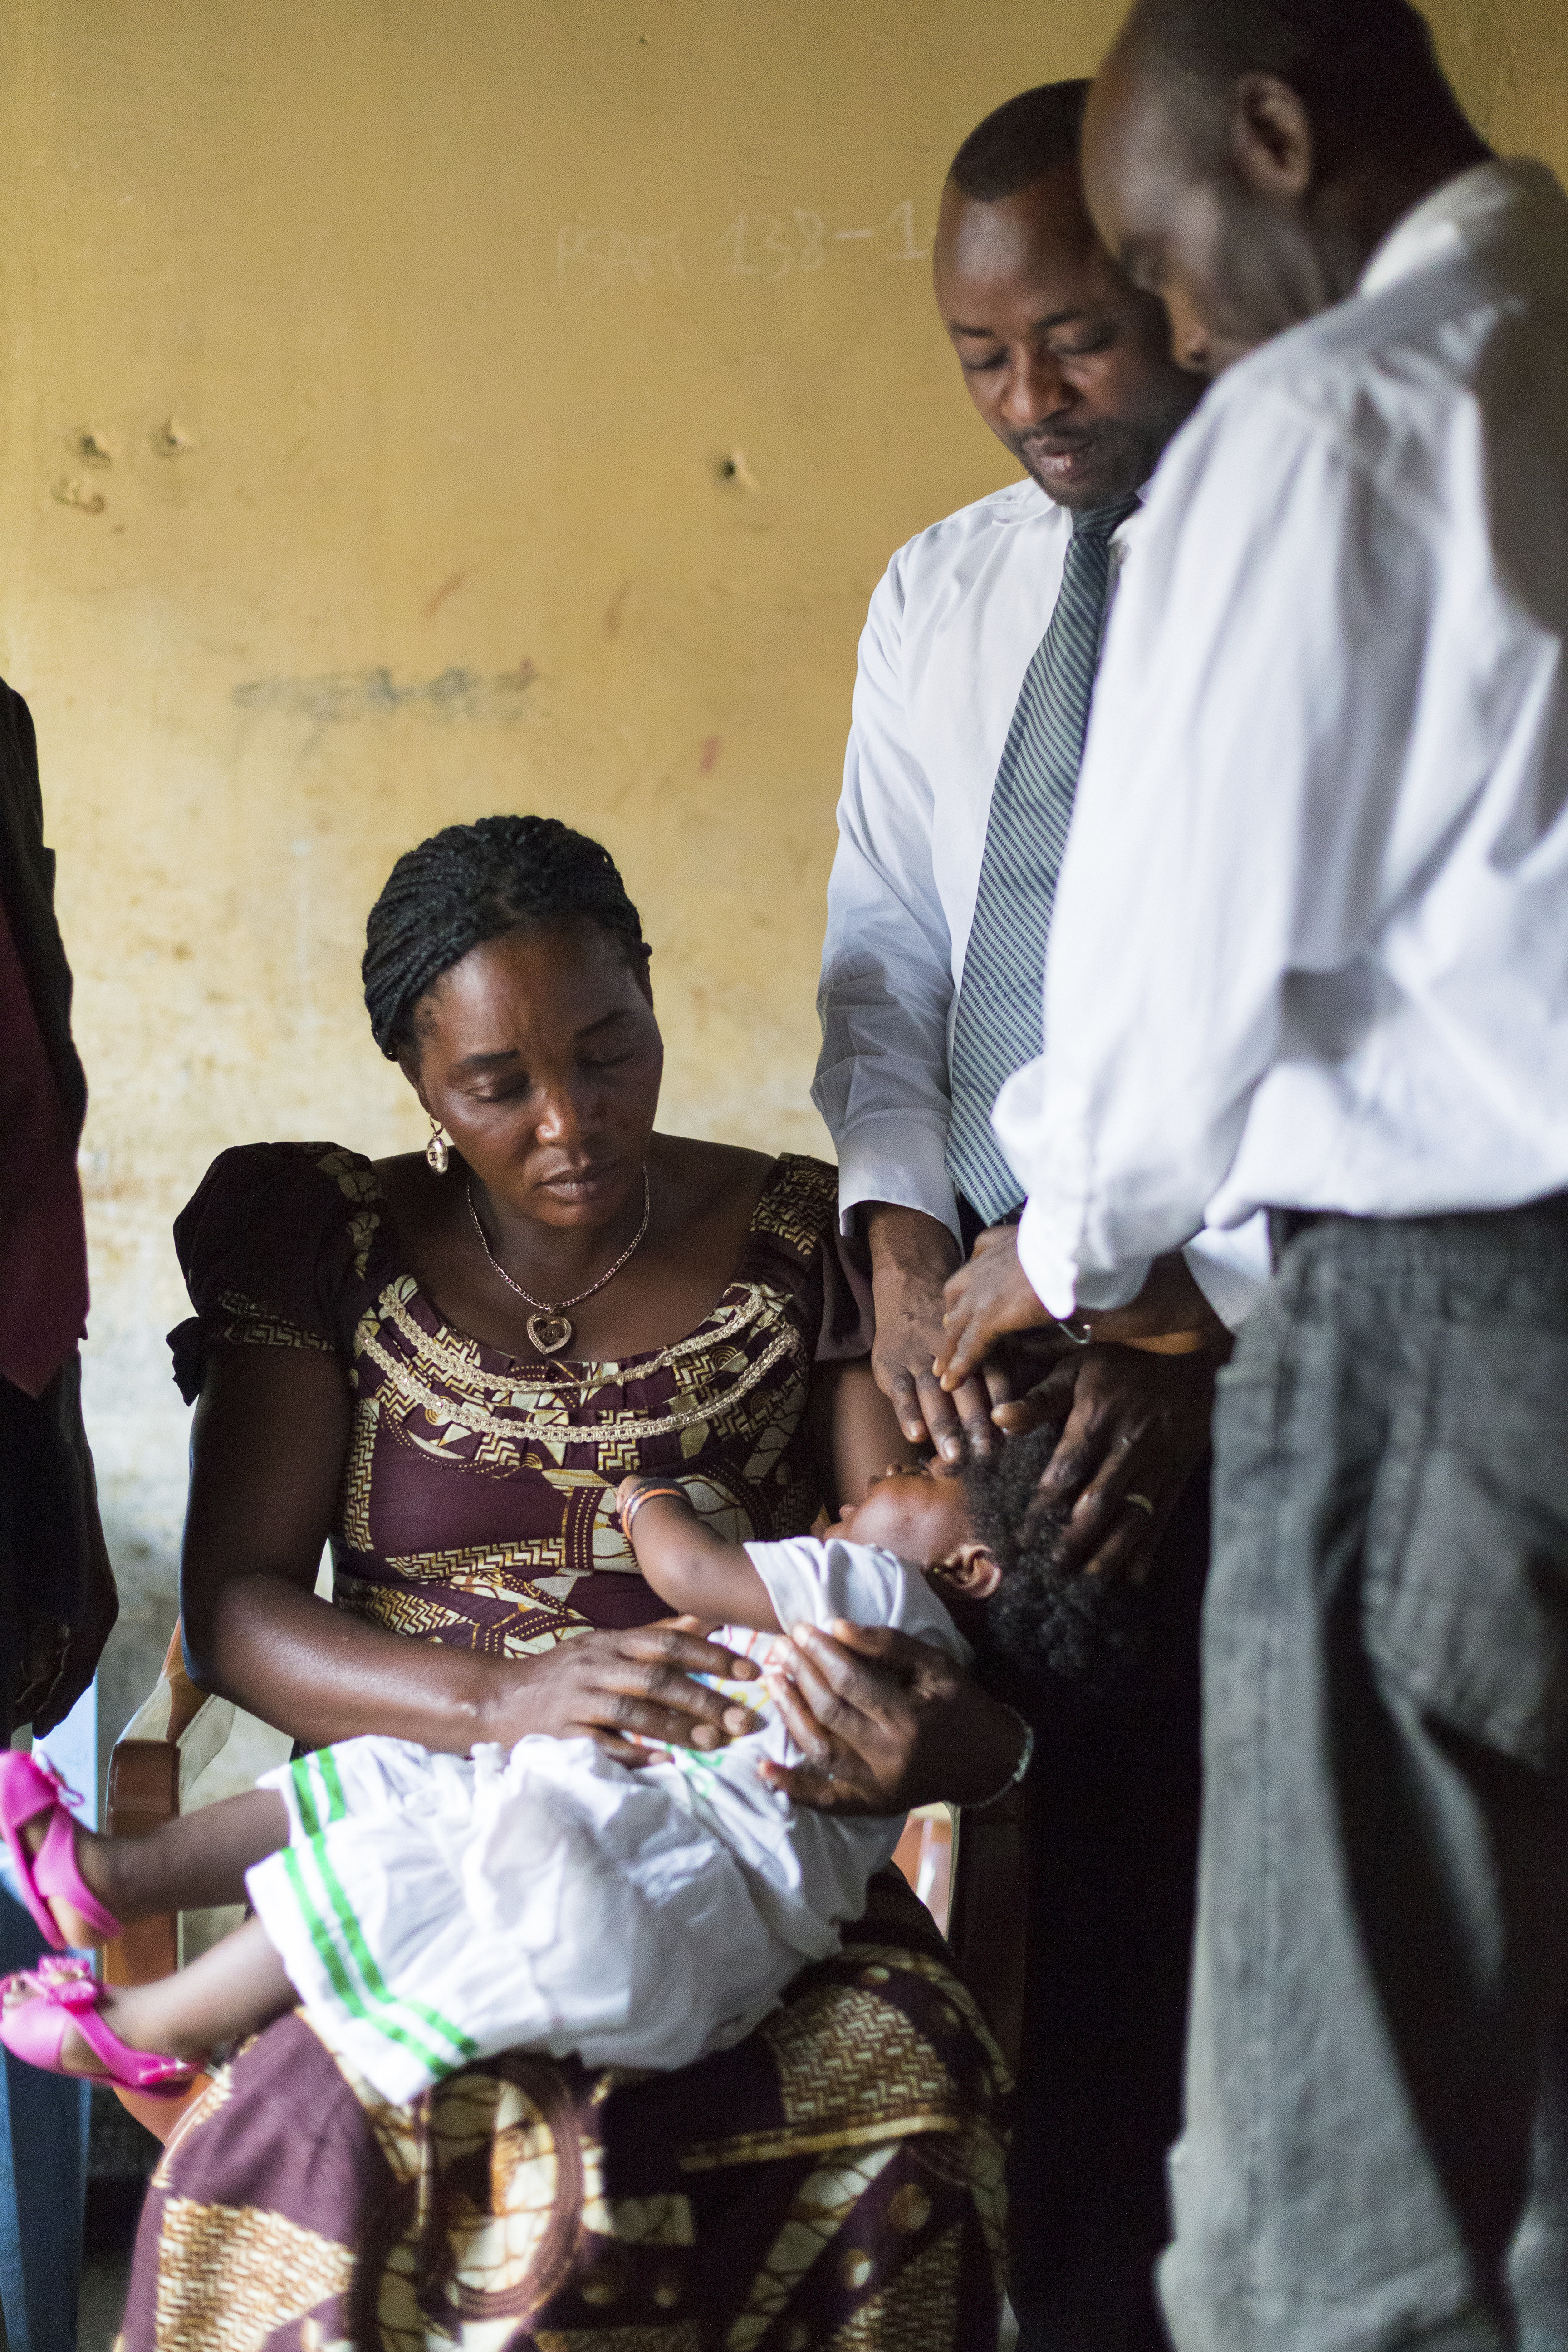 A woman in the Congo holding her baby, who is being blessed by two men.